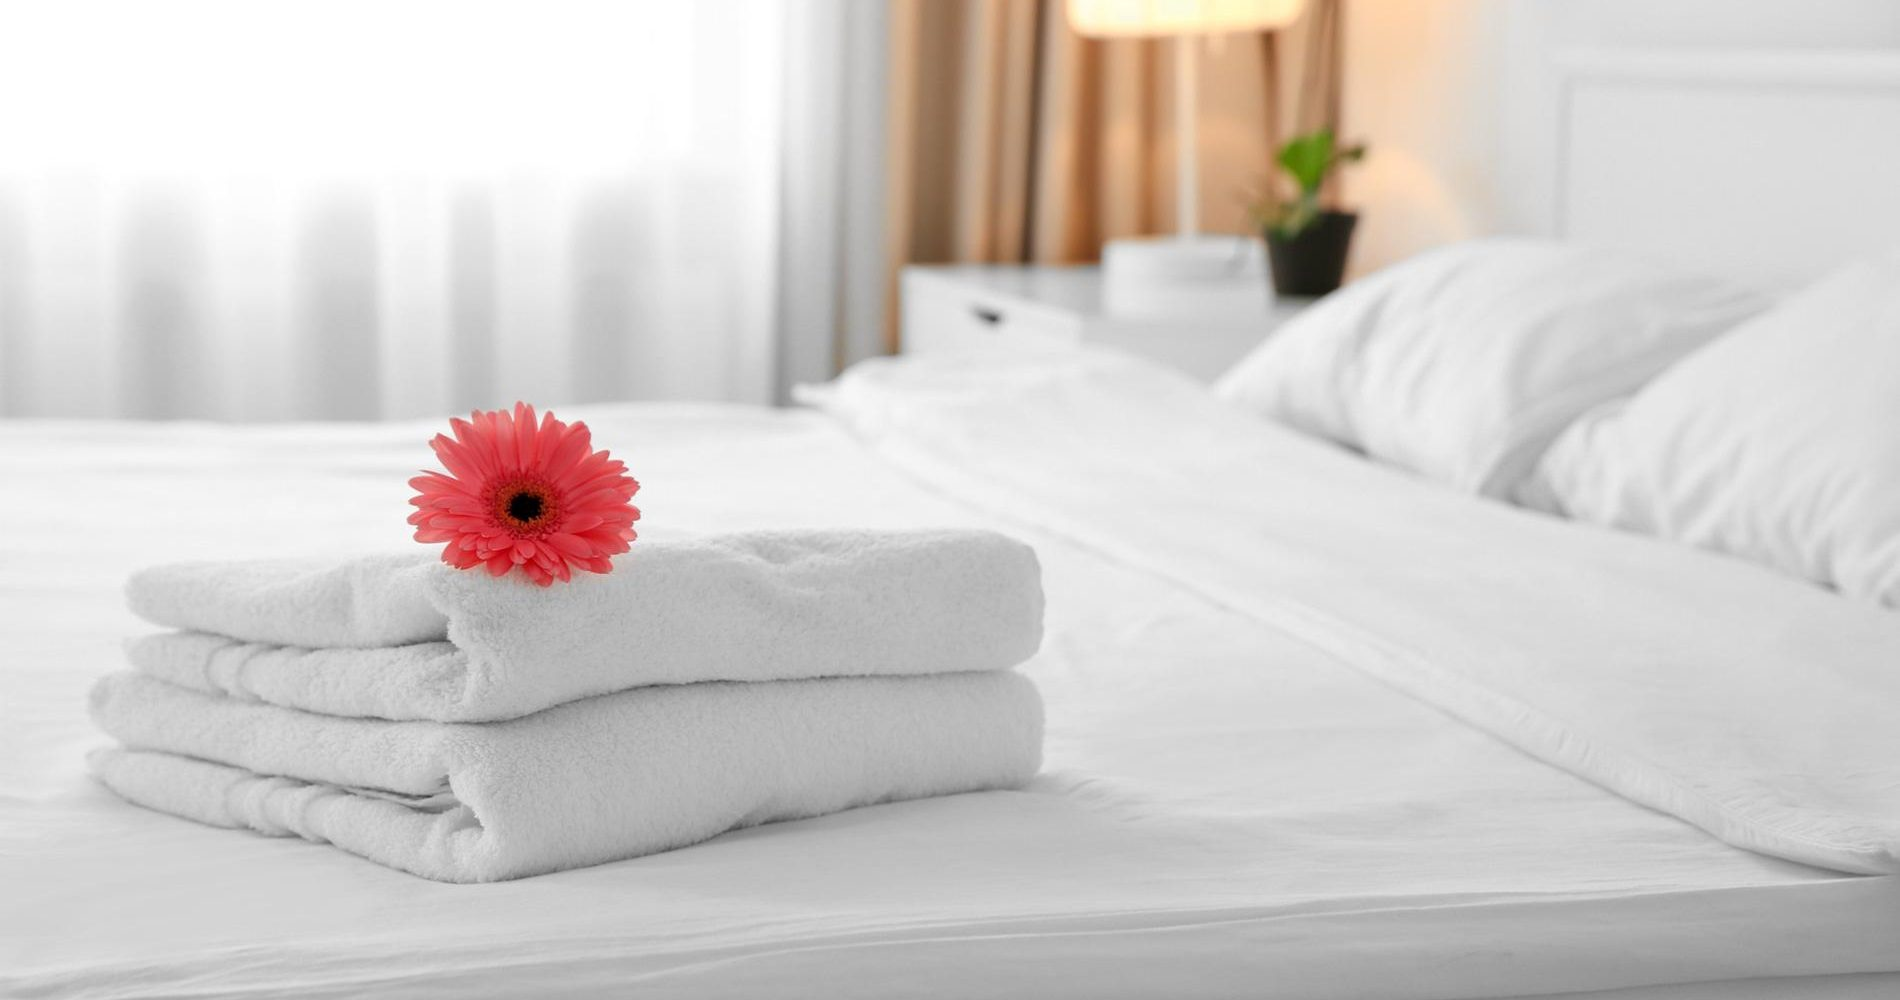 Flower on stack of towels in light hotel room